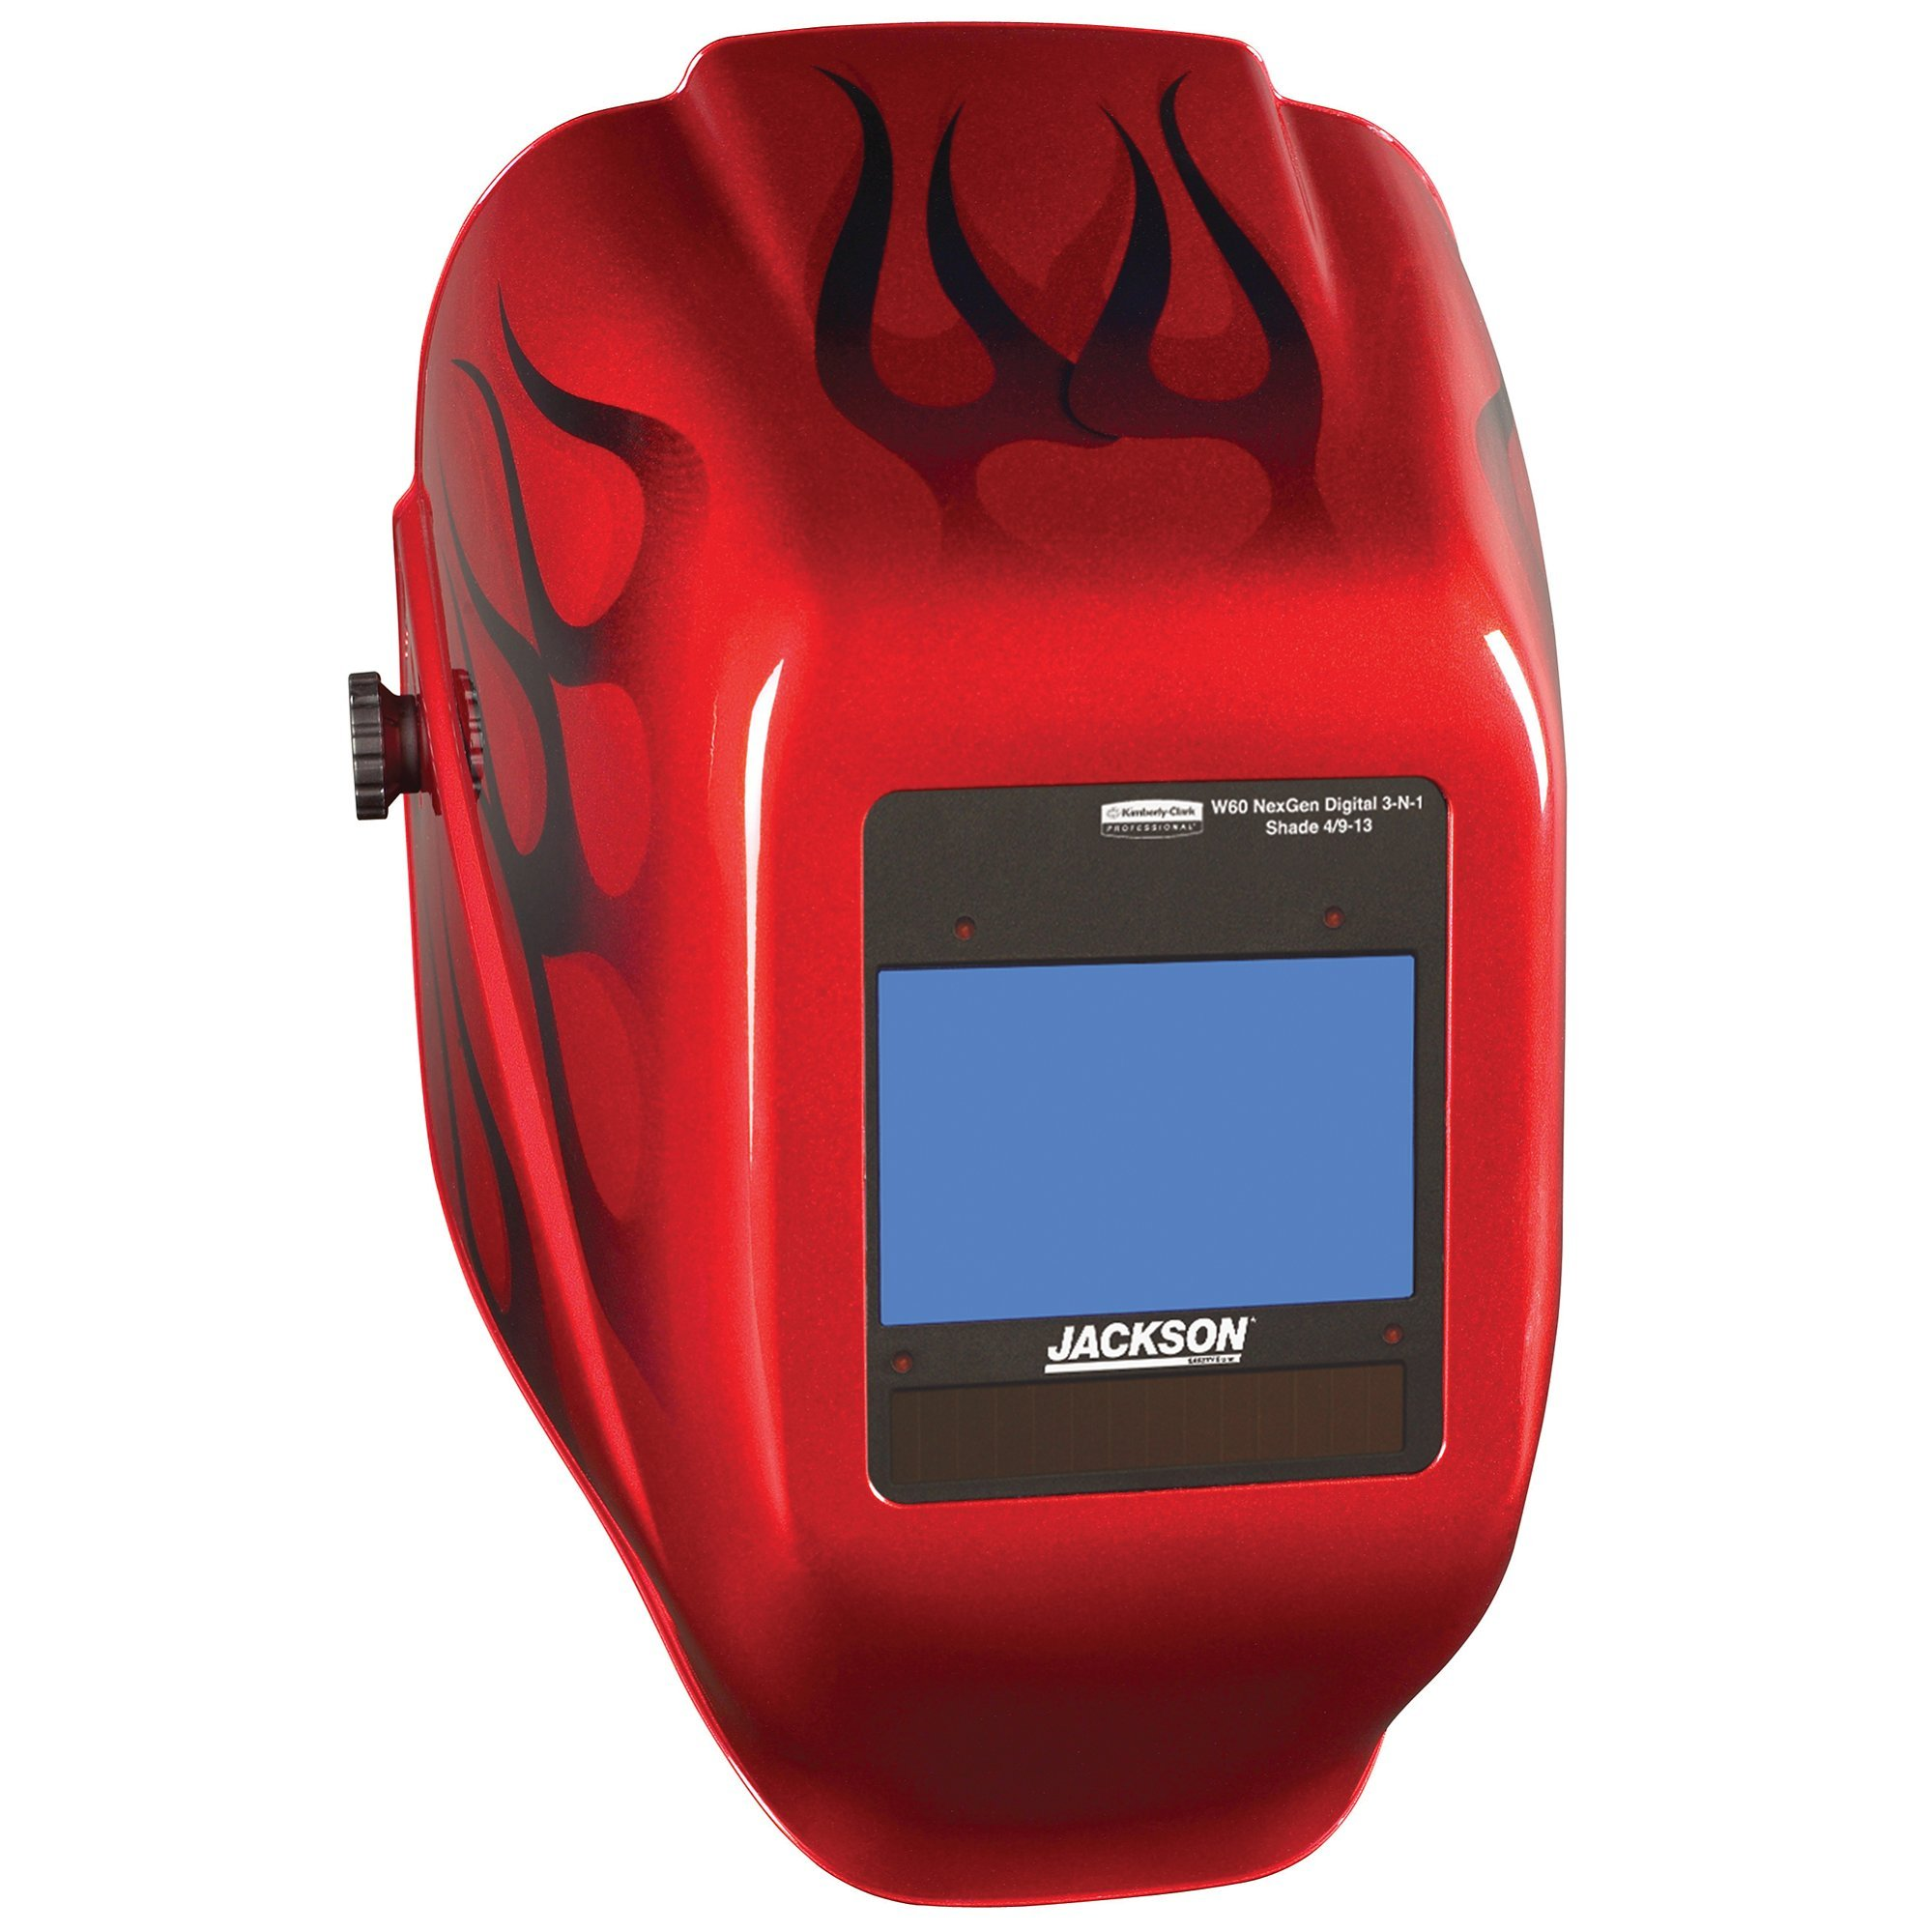 Jackson Safety HSL 100 Welding Helmet with NEXGEN 3-in-1 ADF (46149), Digital Auto Darkening, I-2 Red Flame Style by Jackson Safety